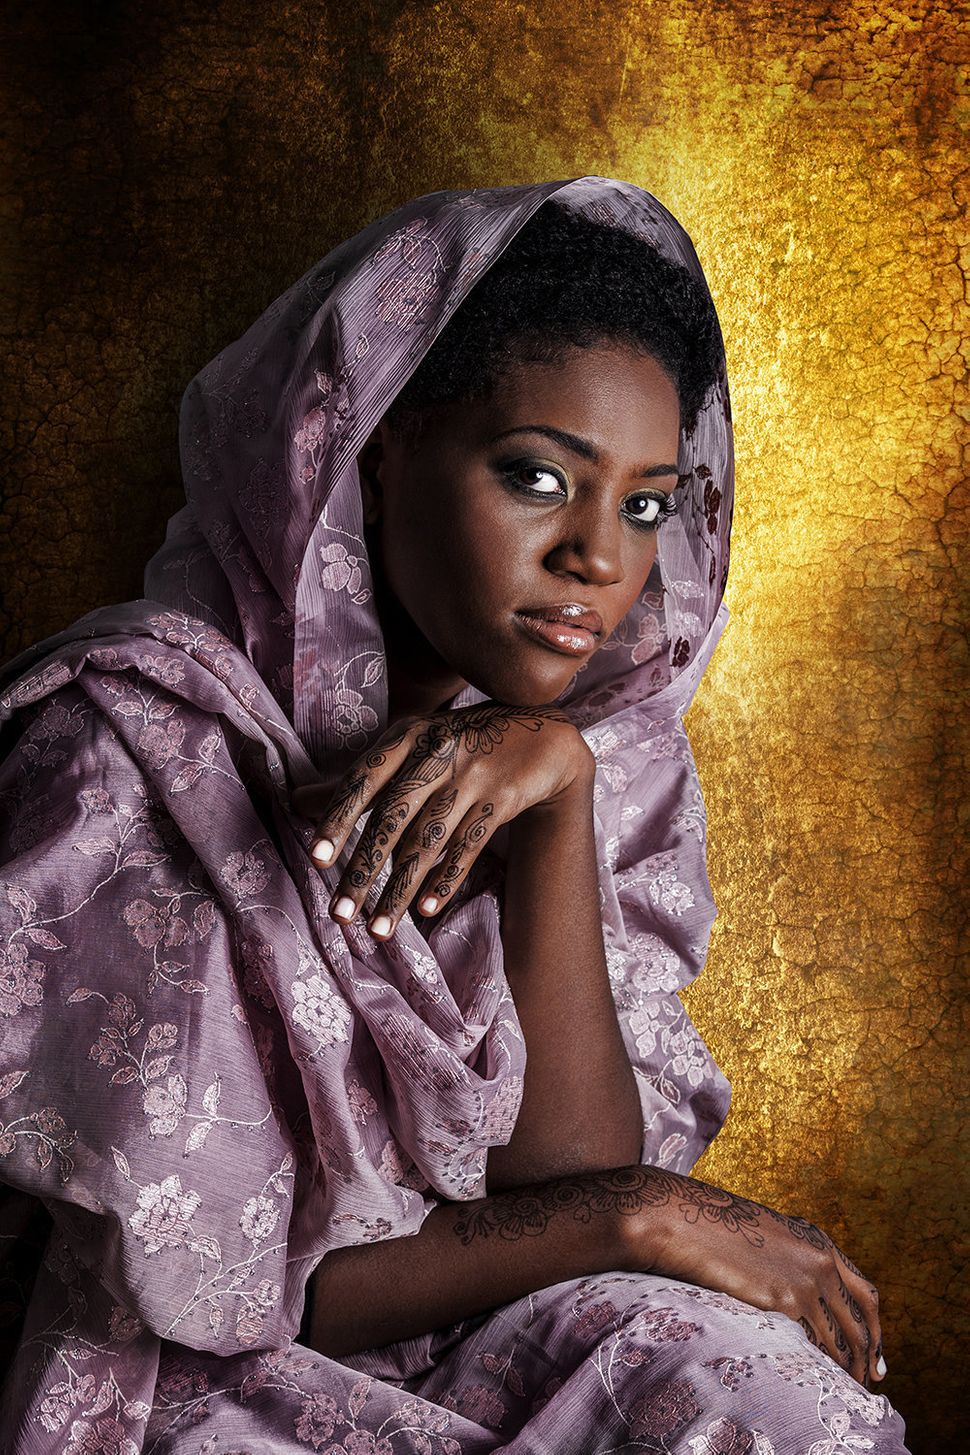 Faouzia is Ivorian. Her father is from the Bambara tribe. Her mother is Sudanese from North Sudan.